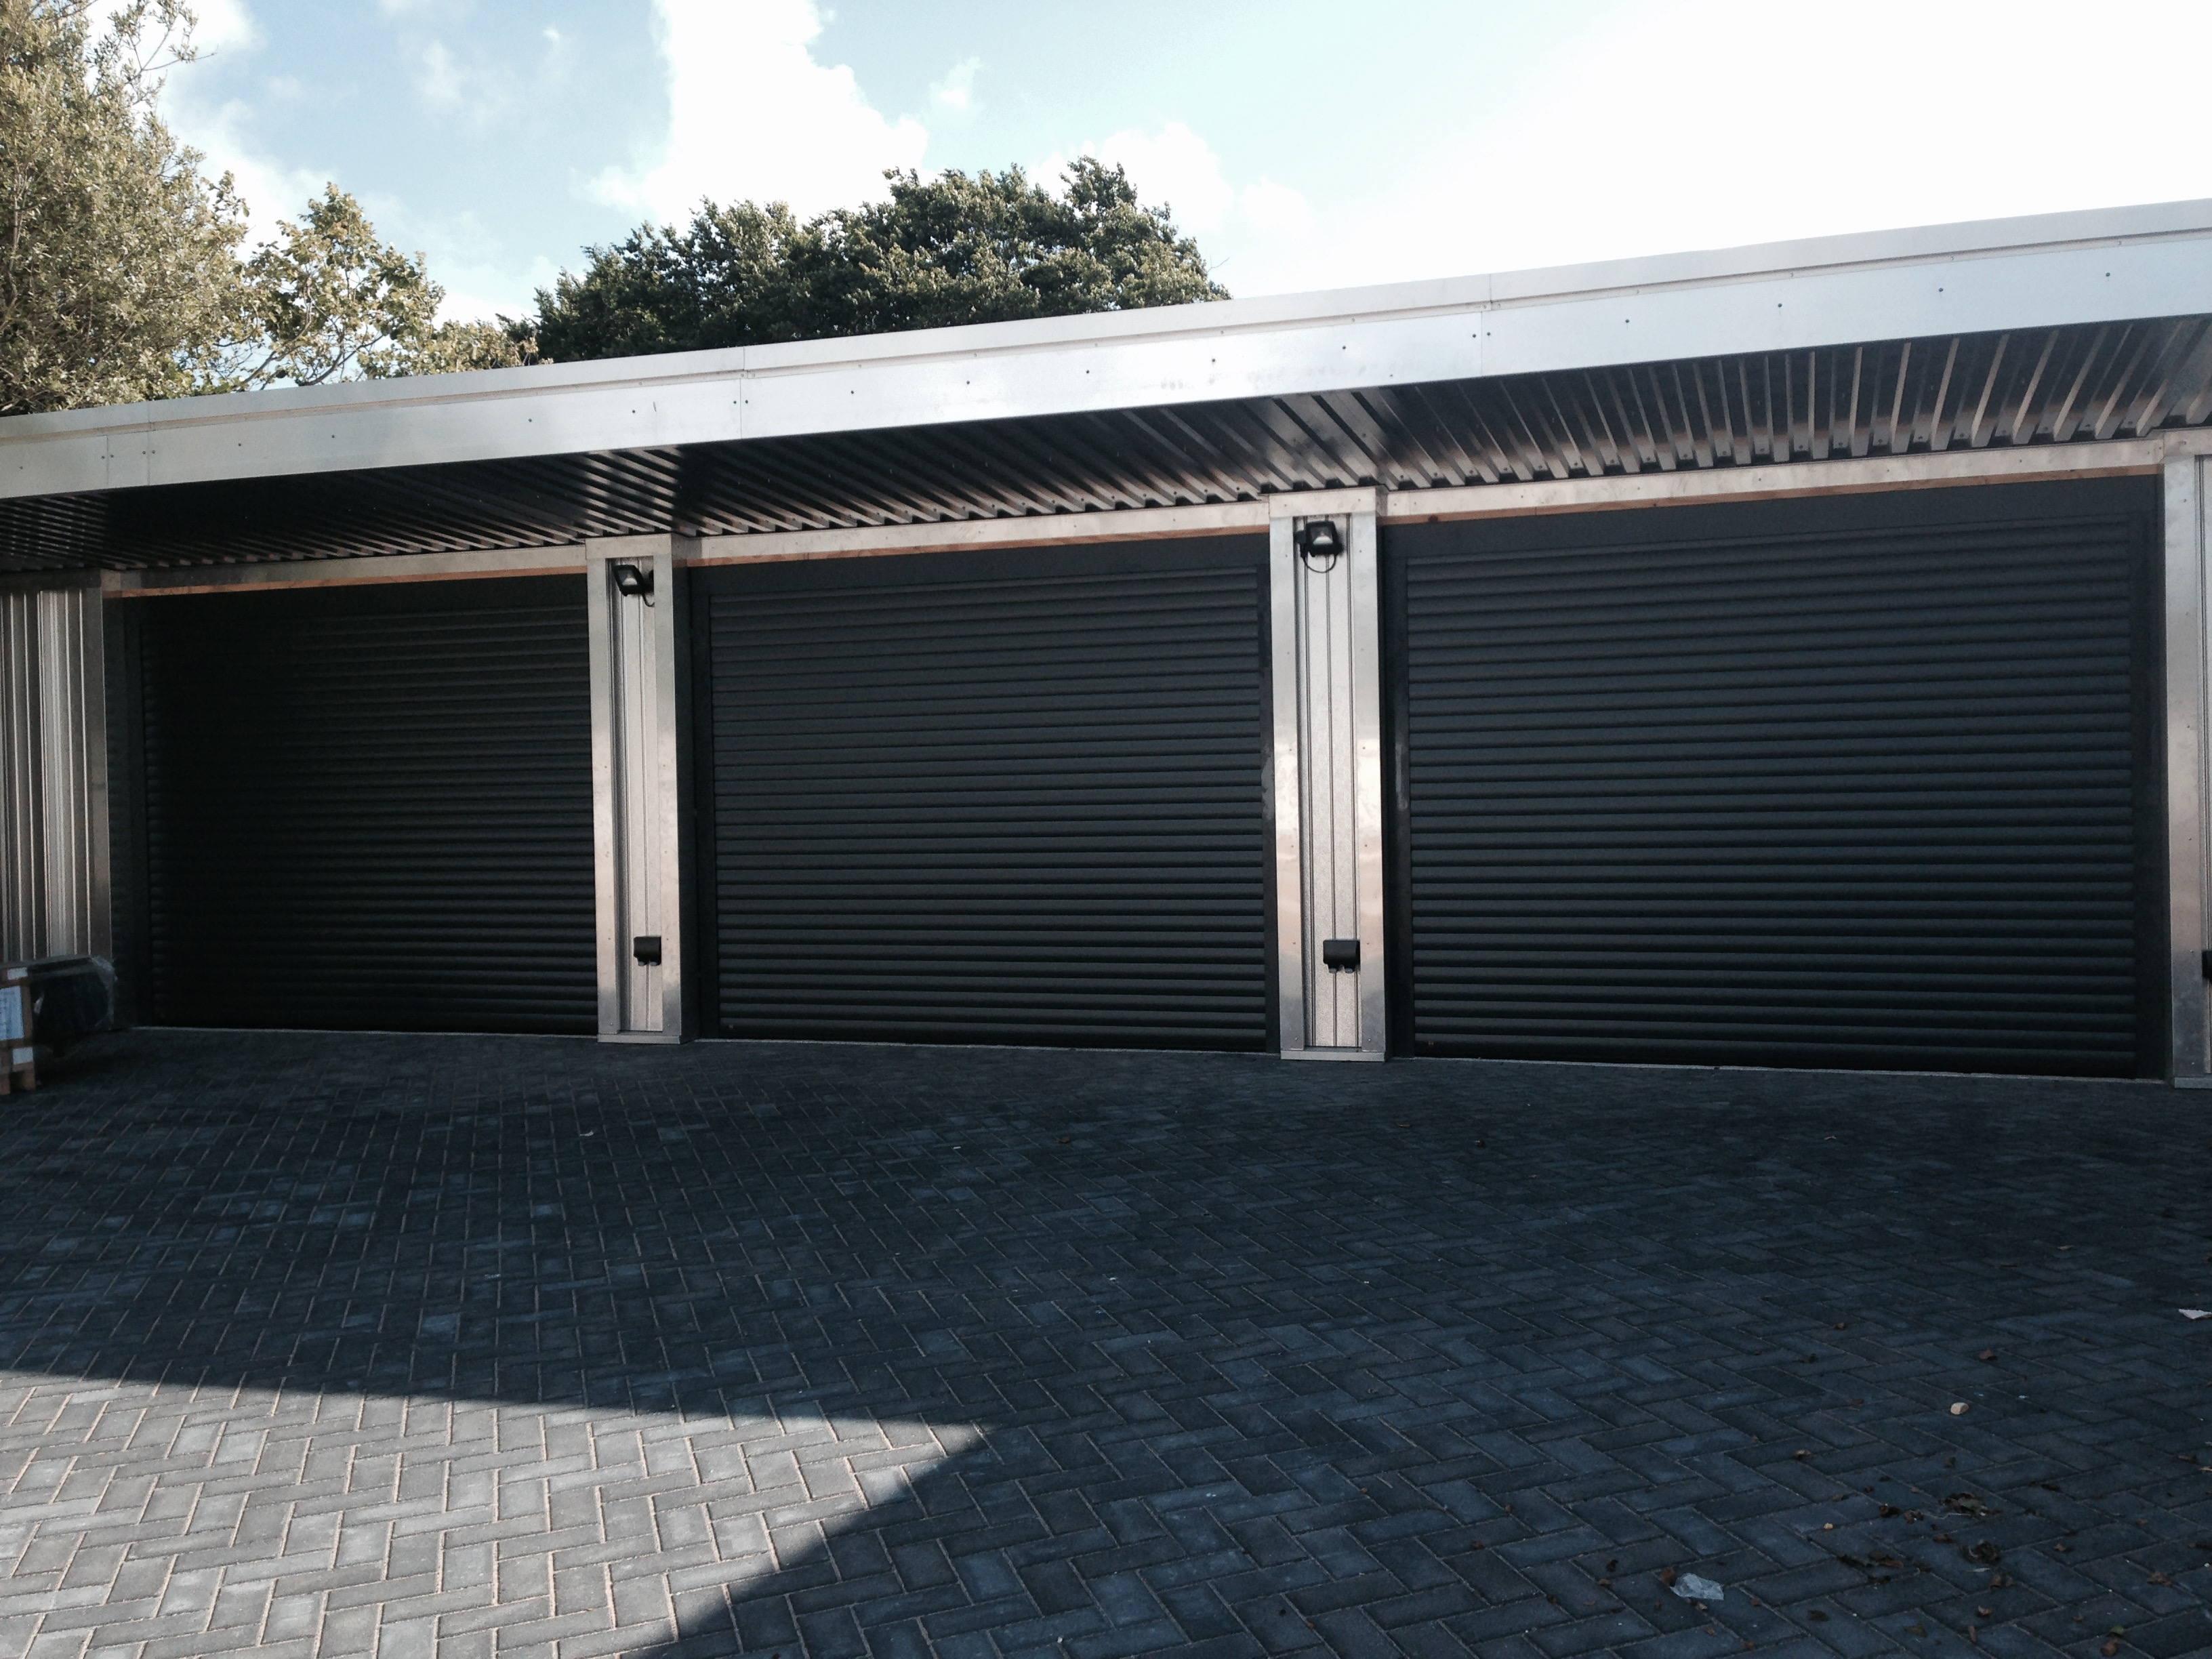 in budasbiz aflk door garage sliding hardware inspiration doors style photos pic ue horizontal ideas shocking of fascinating and styles